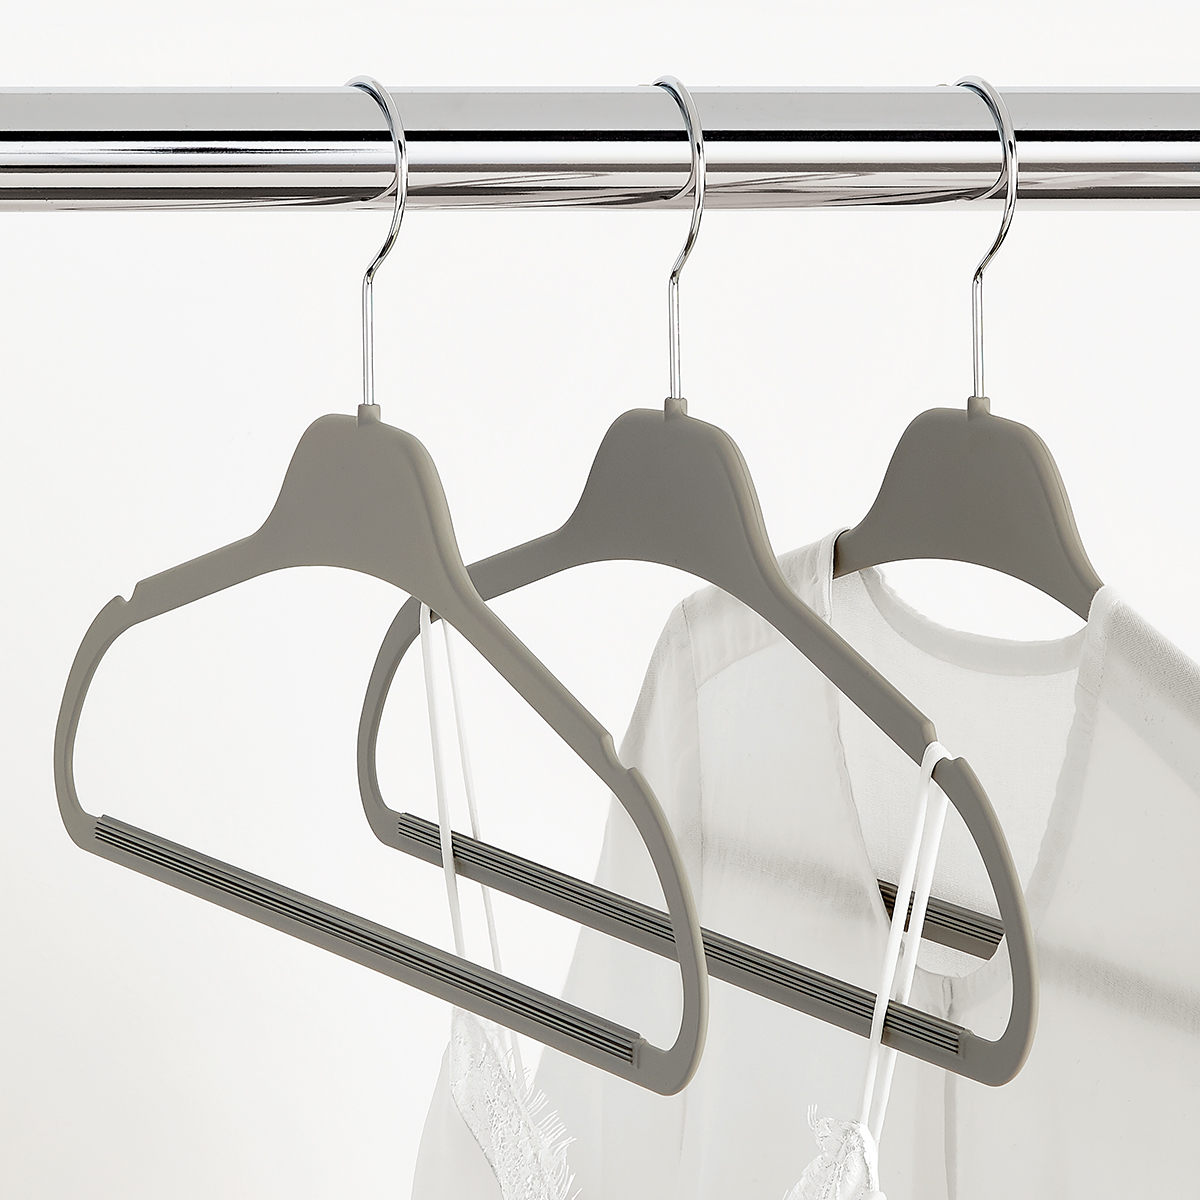 Grey Non-Slip Rubberized Suit Hangers Case of 40